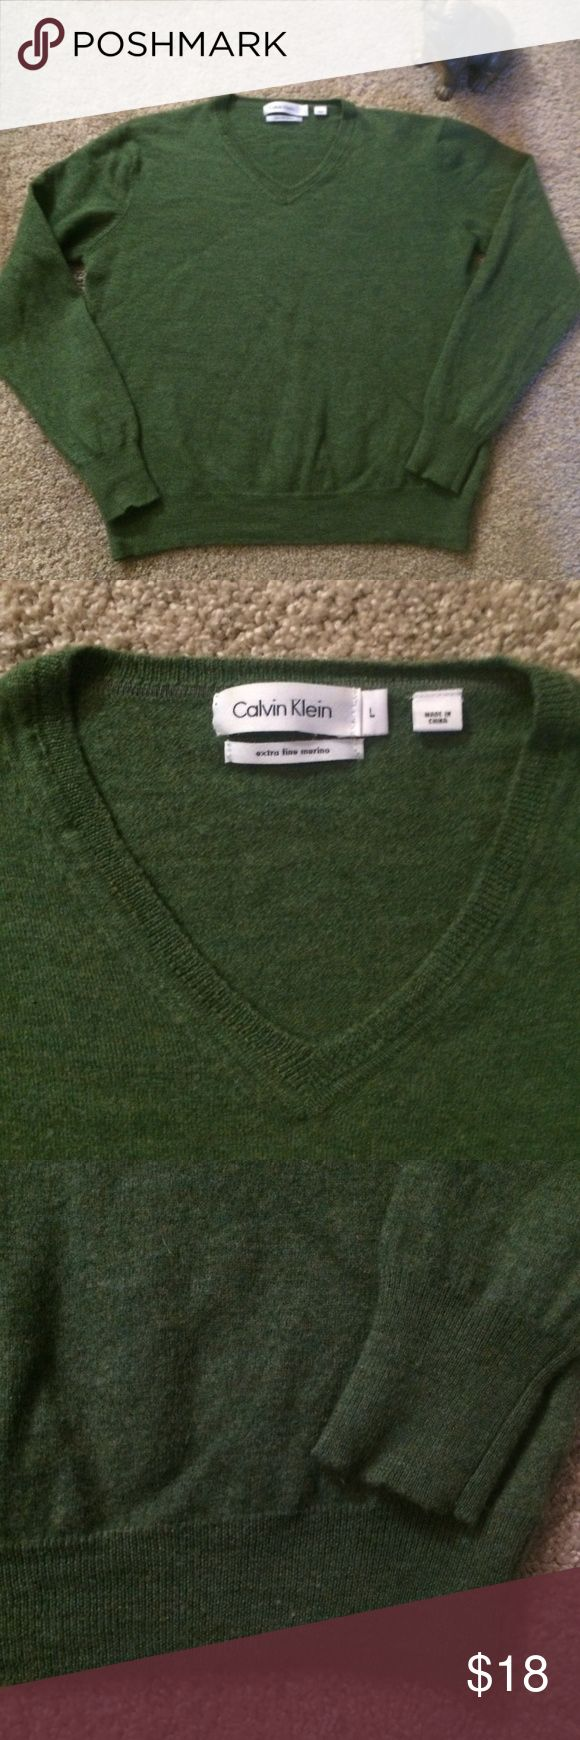 ✨ Calvin Klein merino wool leaf green v-neck ✨ Great quality! Calvin Klein 90s vintage v-neck sweater. Extra fine merino wool - so soft and fuzzy. From a smoke-free home. Perfect for work with slacks and pumps or for a night out with a statement necklace and a short skirt. Please comment with any questions or feel free to make an offer! Calvin Klein Sweaters V-Necks